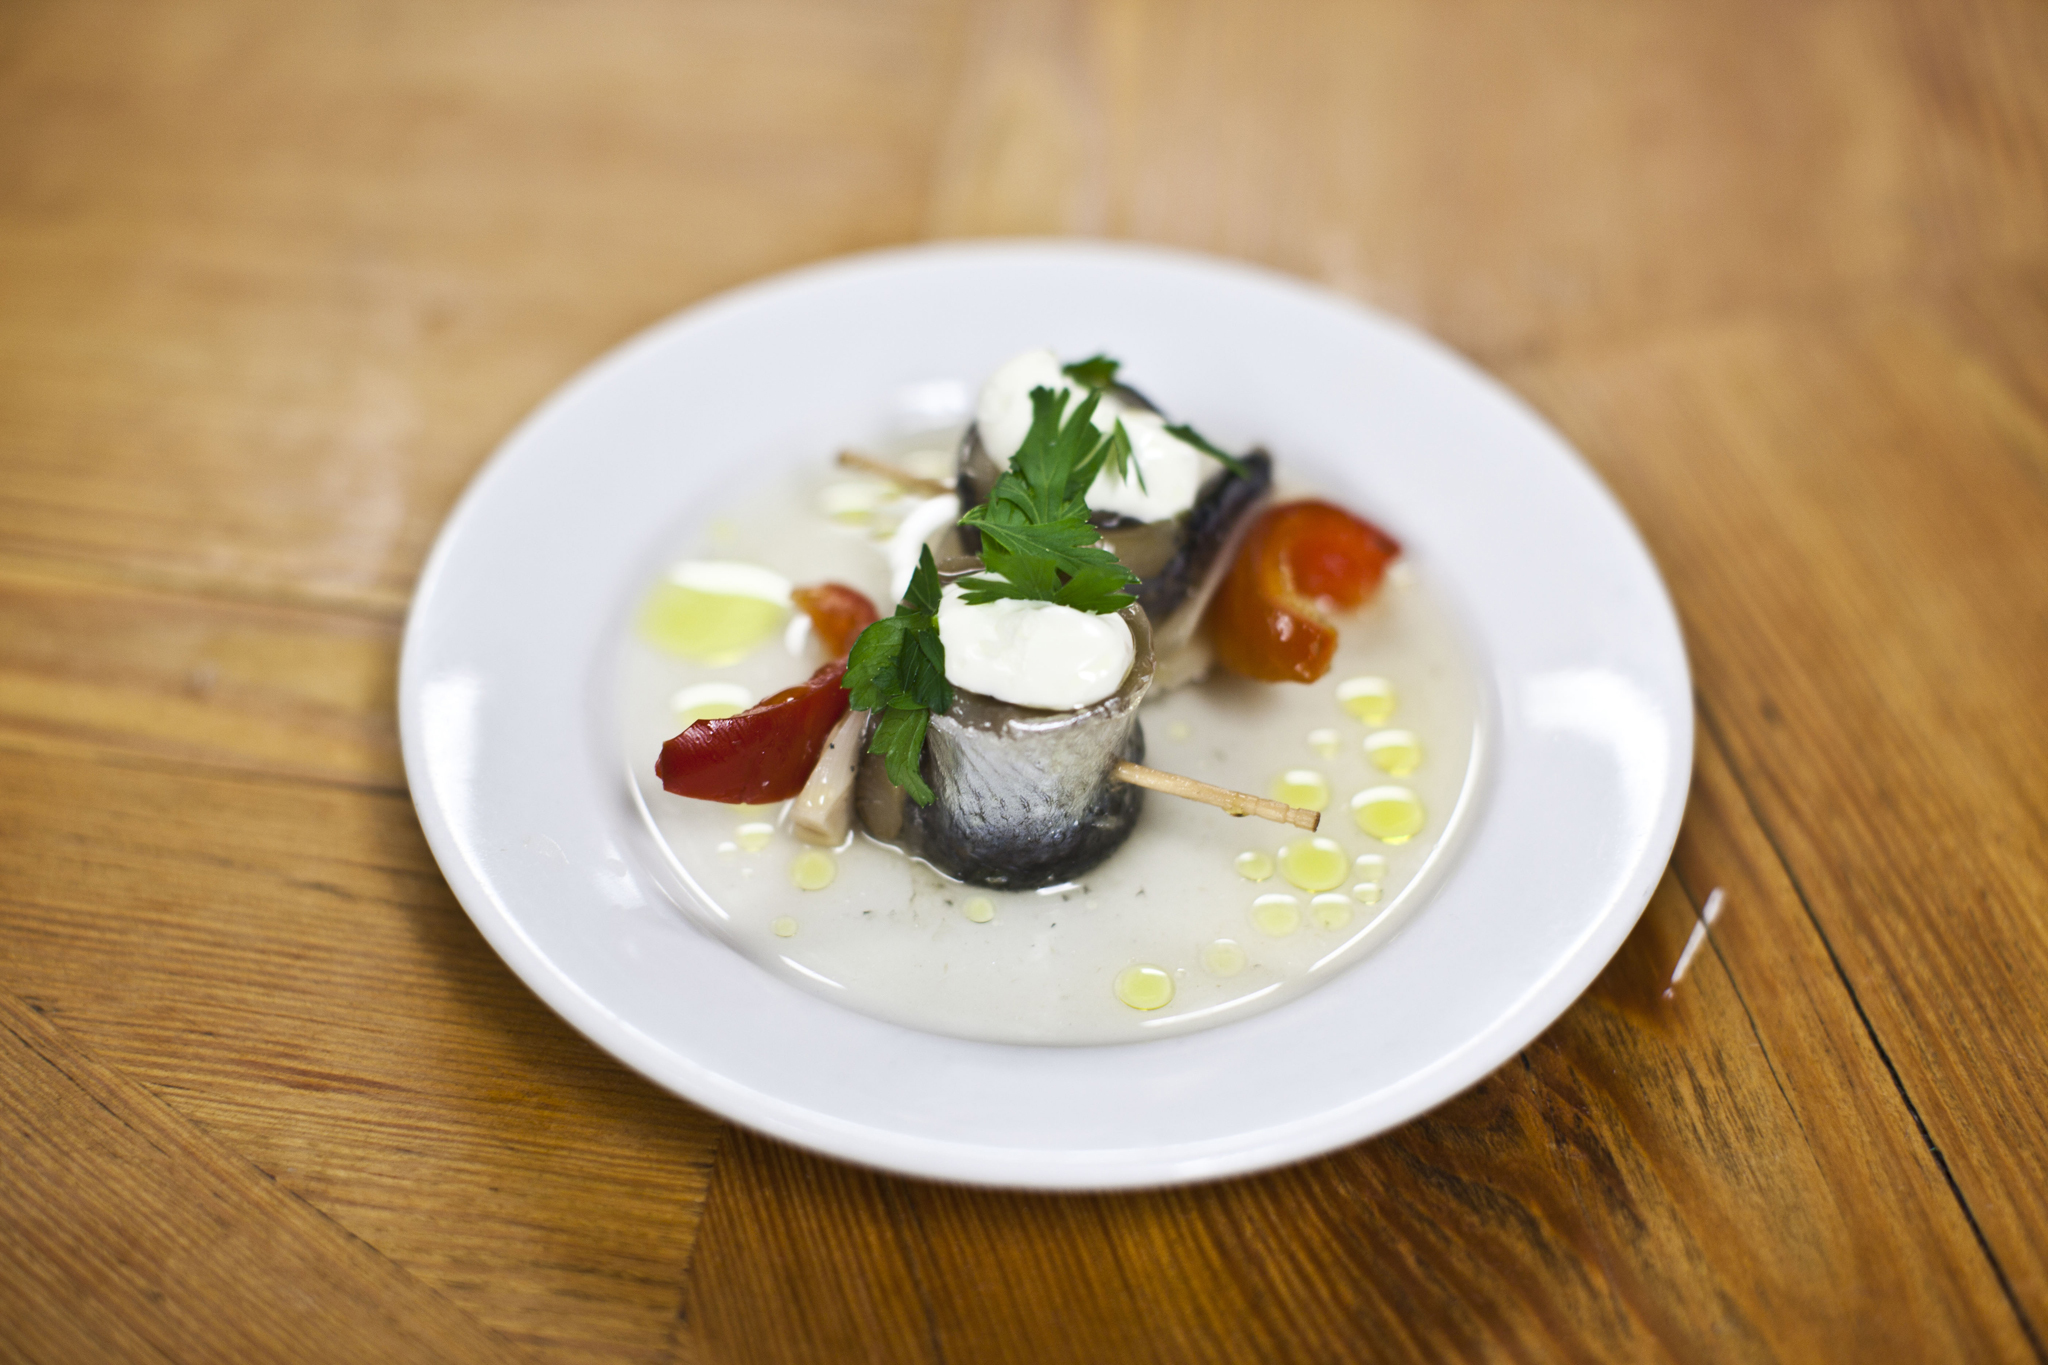 Rollmops at Allswell